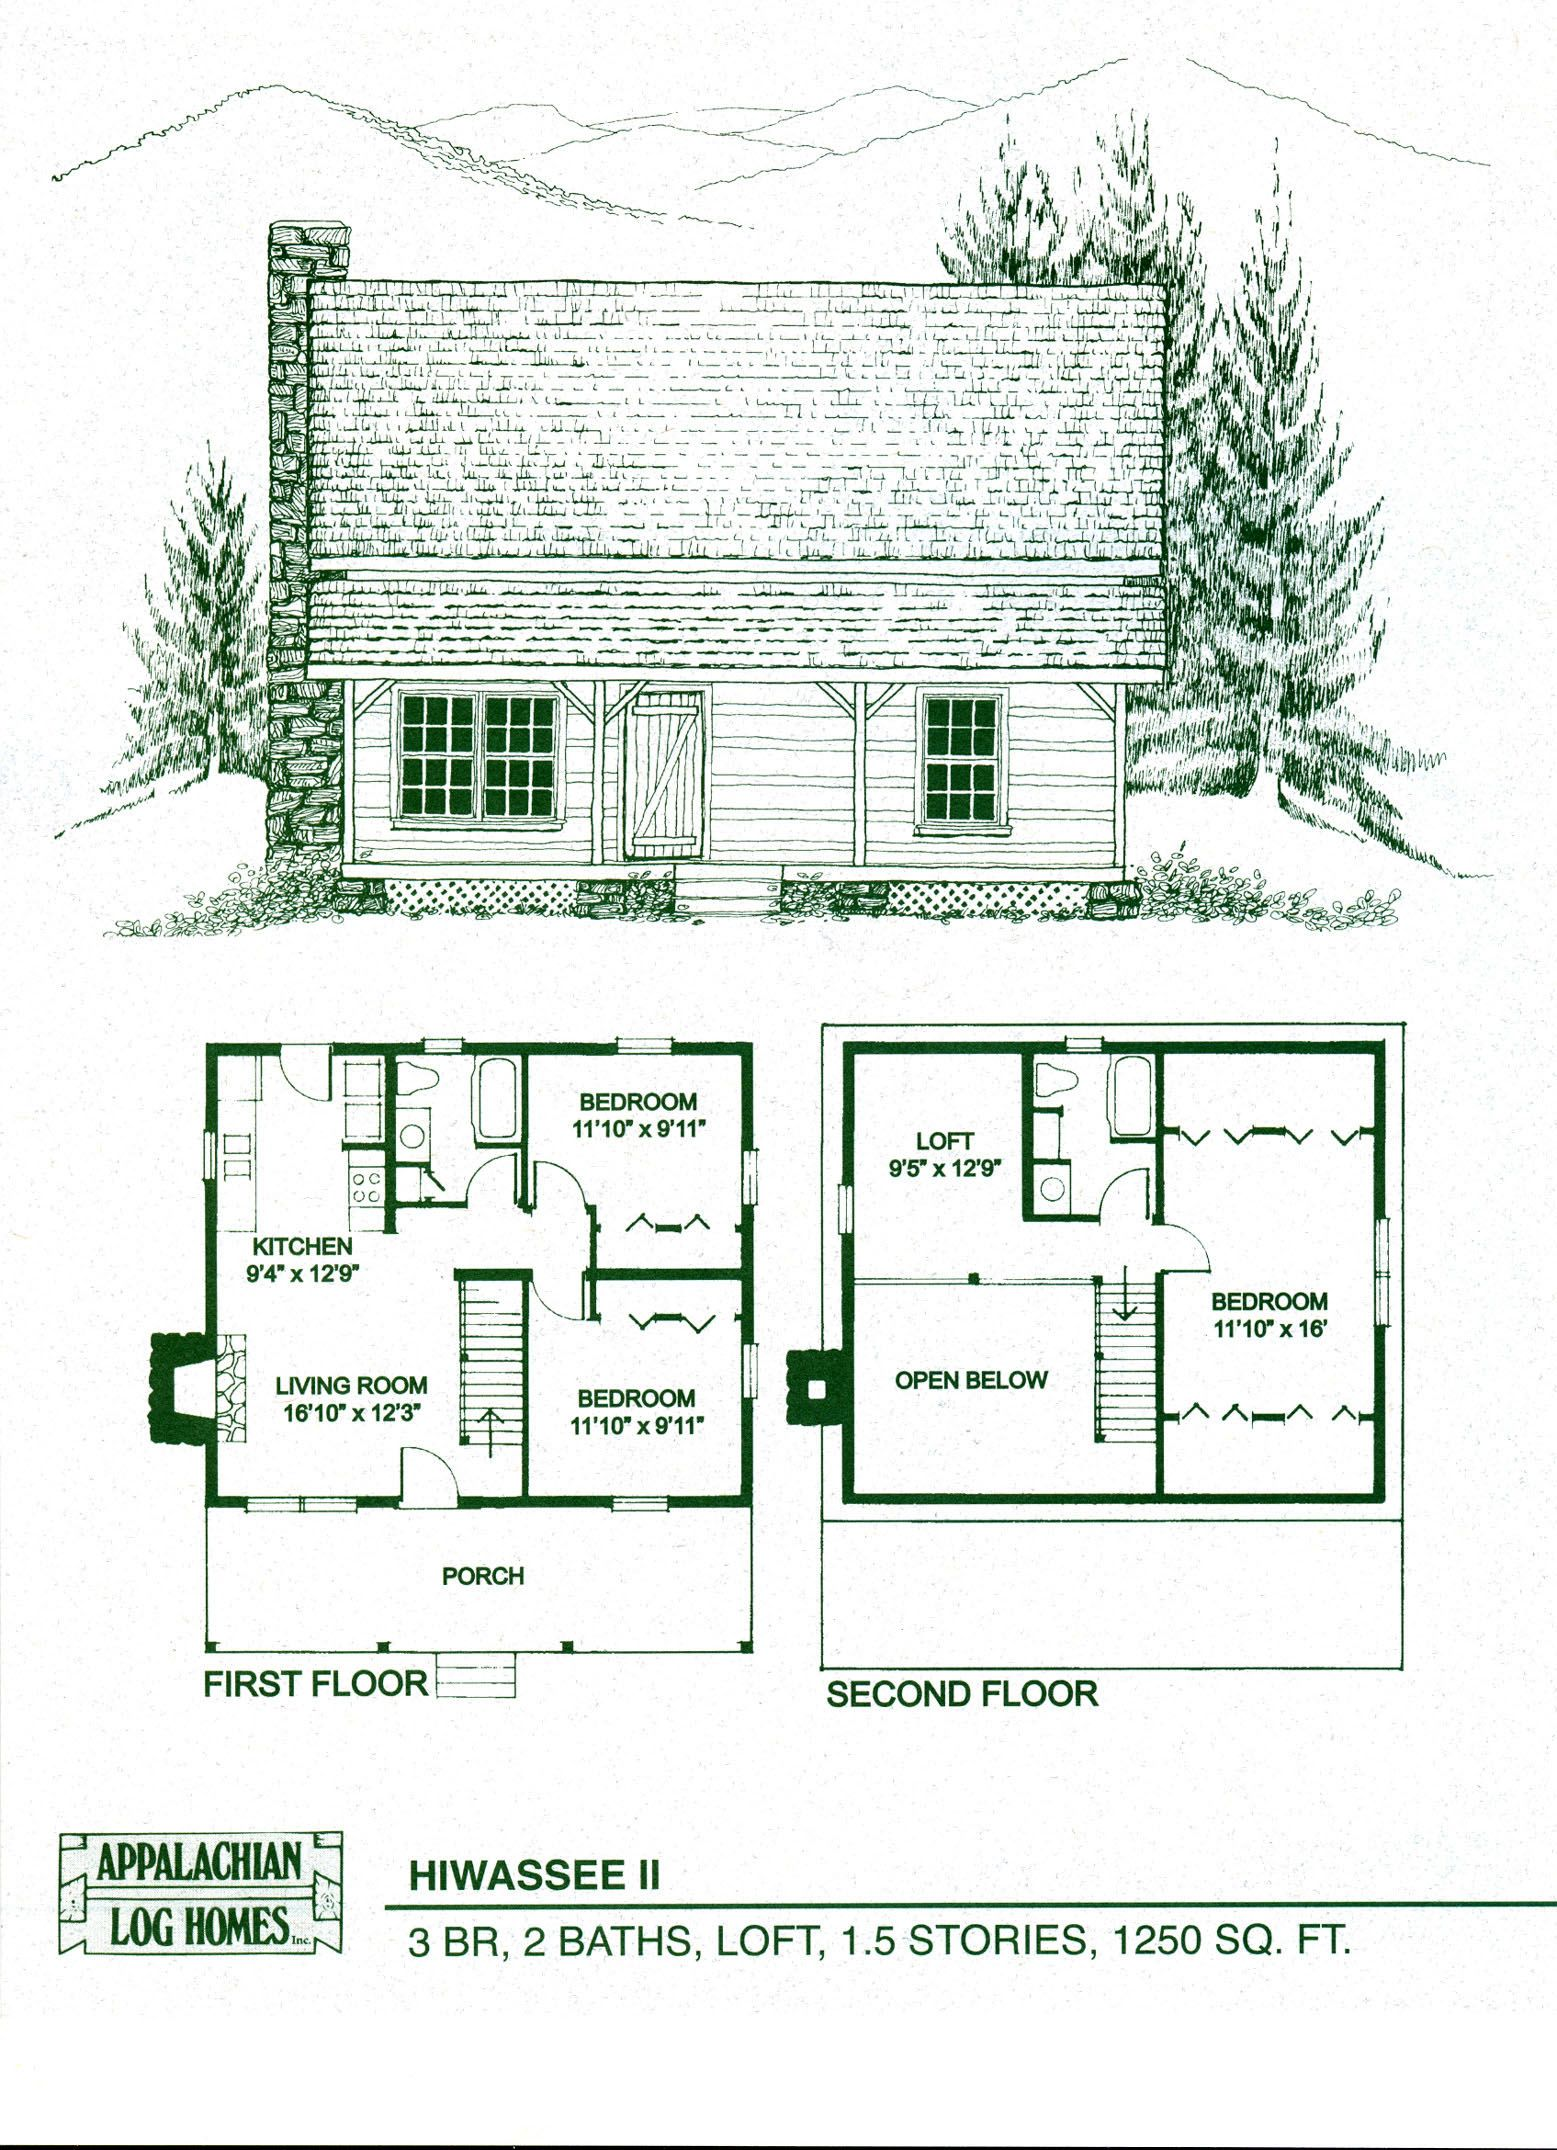 Log home floor plans log cabin kits appalachian log for Log home house plans designs